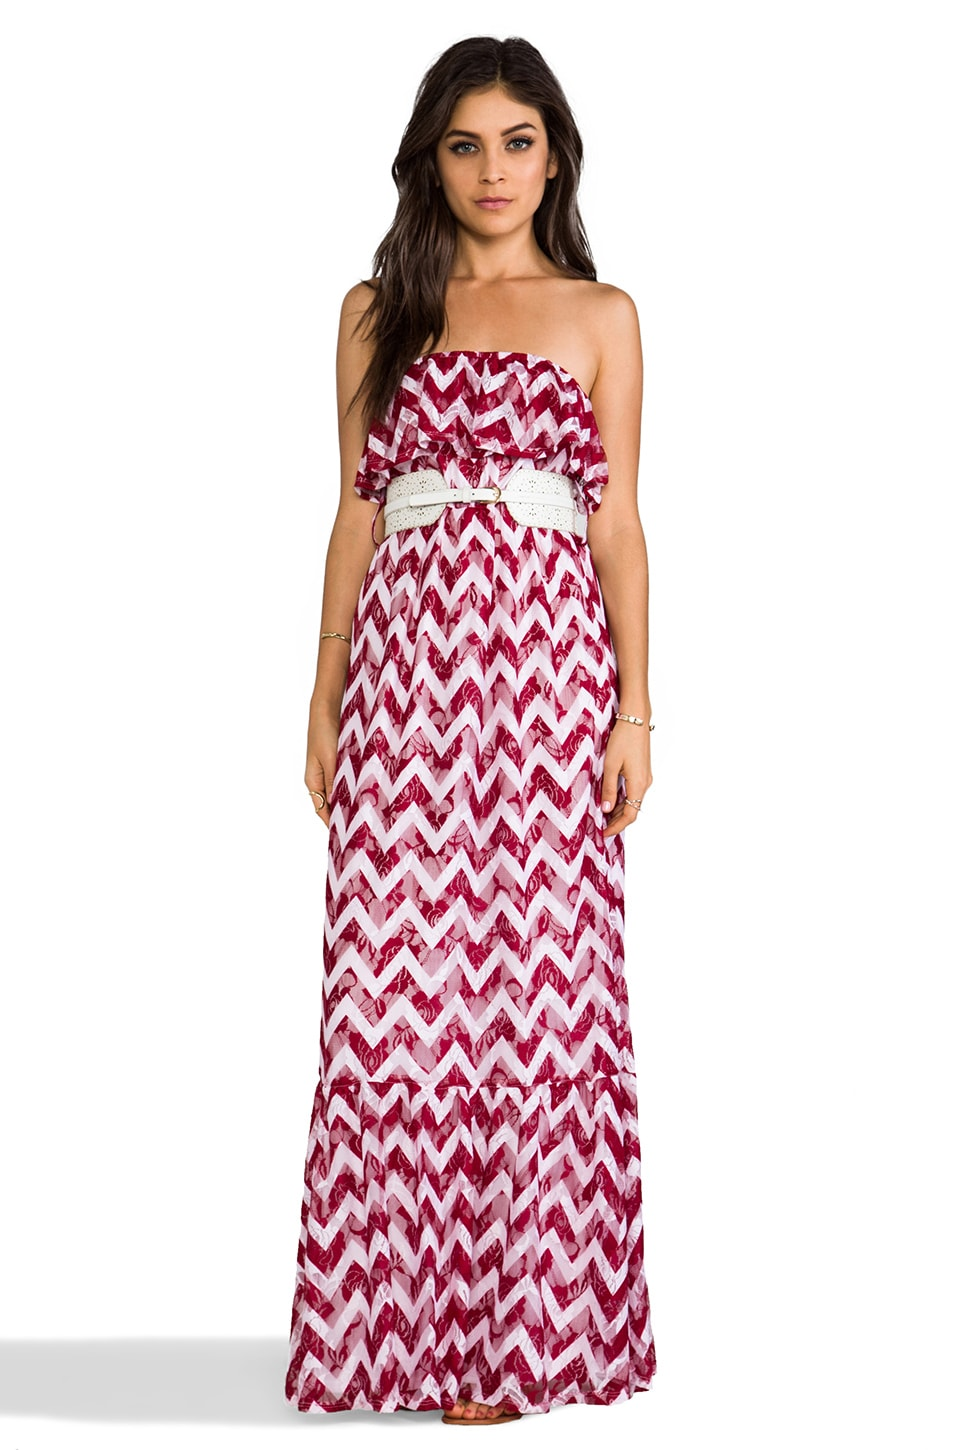 VAVA by Joy Han Amber Maxi Dress in Burgundy